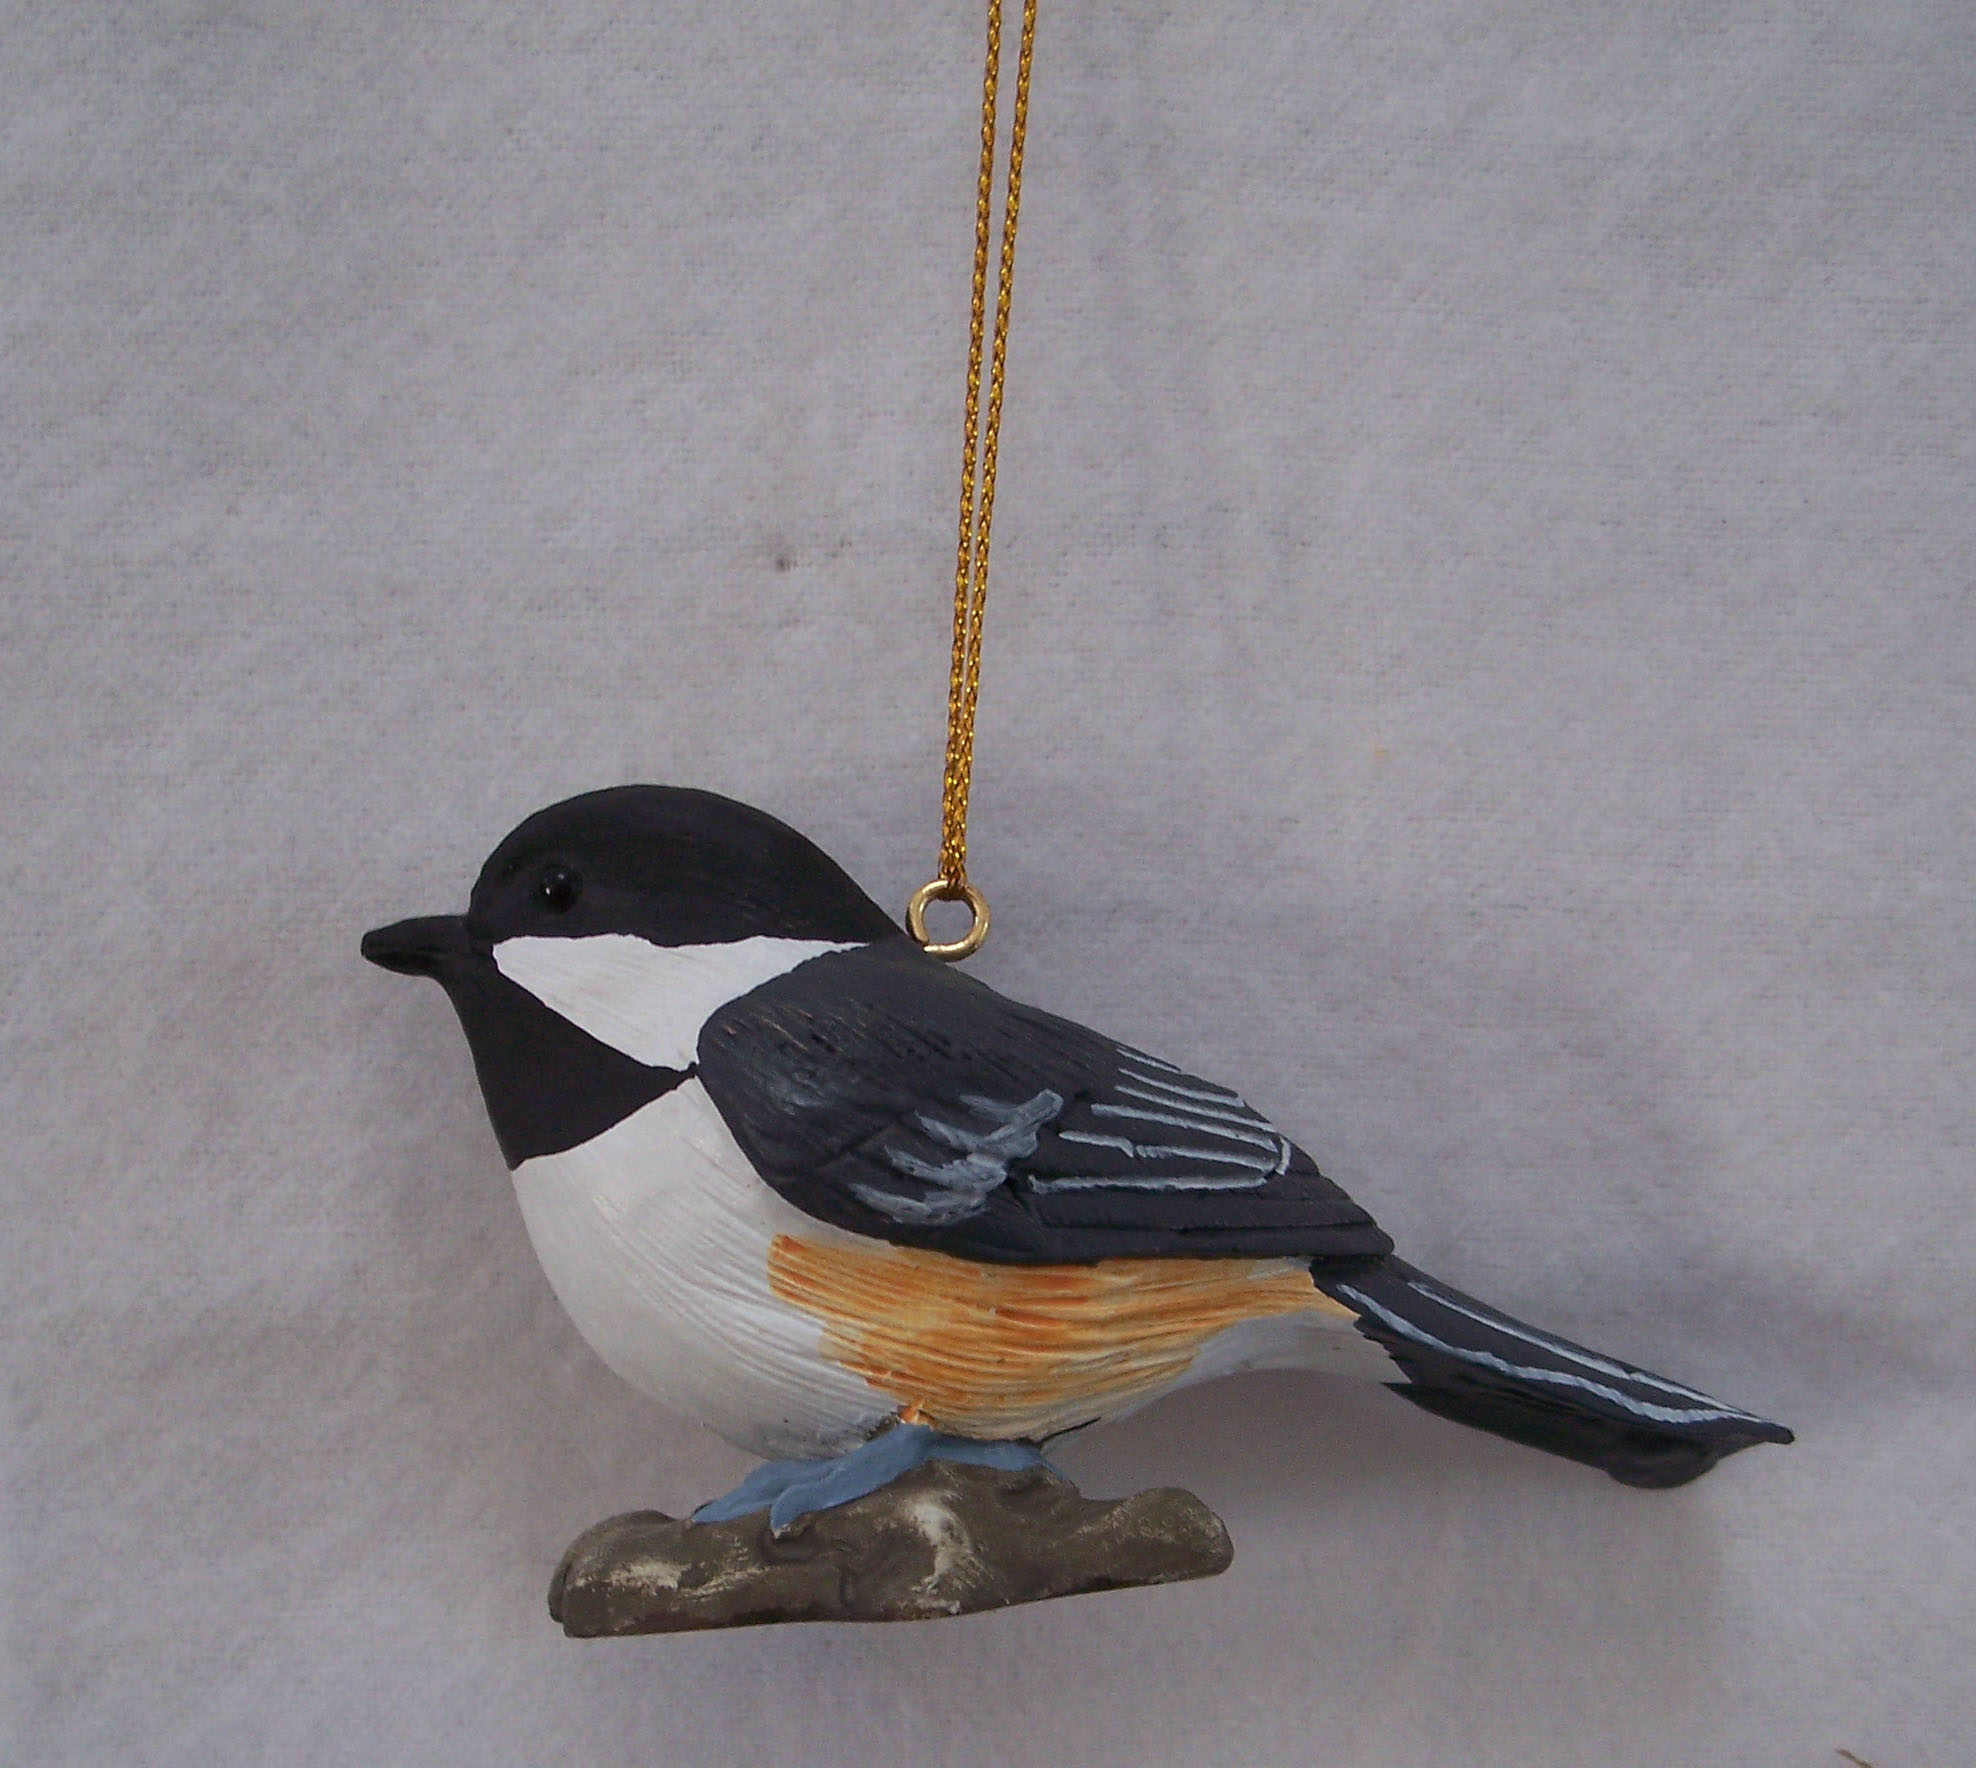 Lifesize Chickadee Ornament